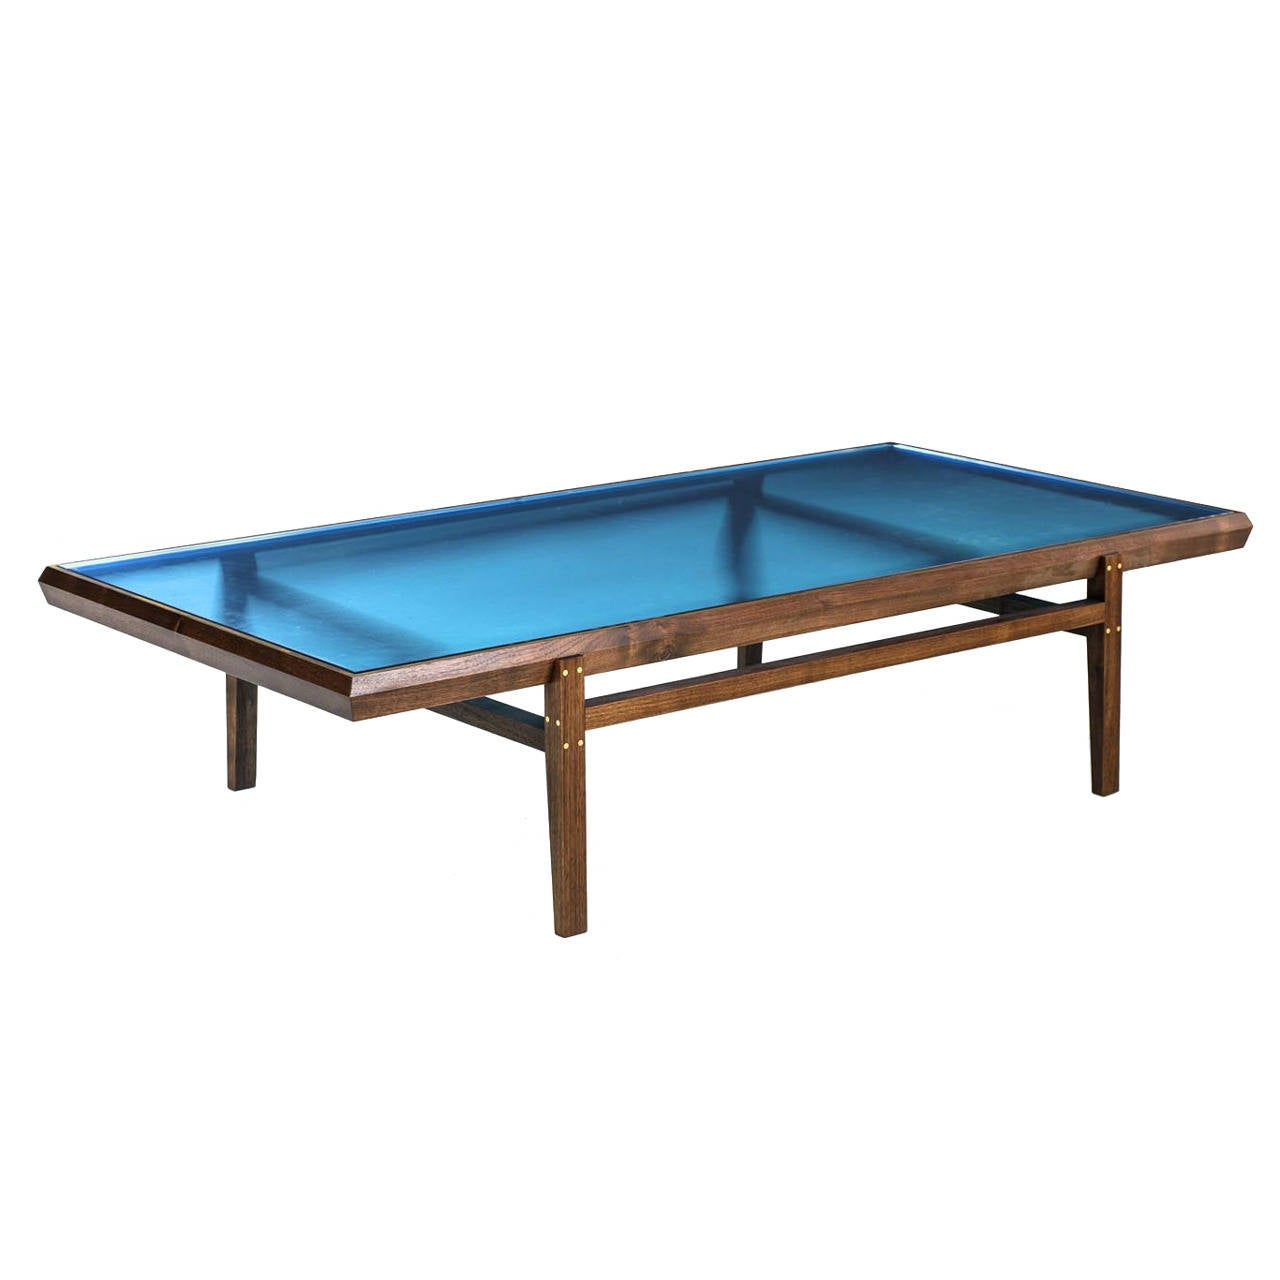 Pintor Coffee Table Walnut Frame With Brass Inlay Blue Glass Top For Sale At 1stdibs